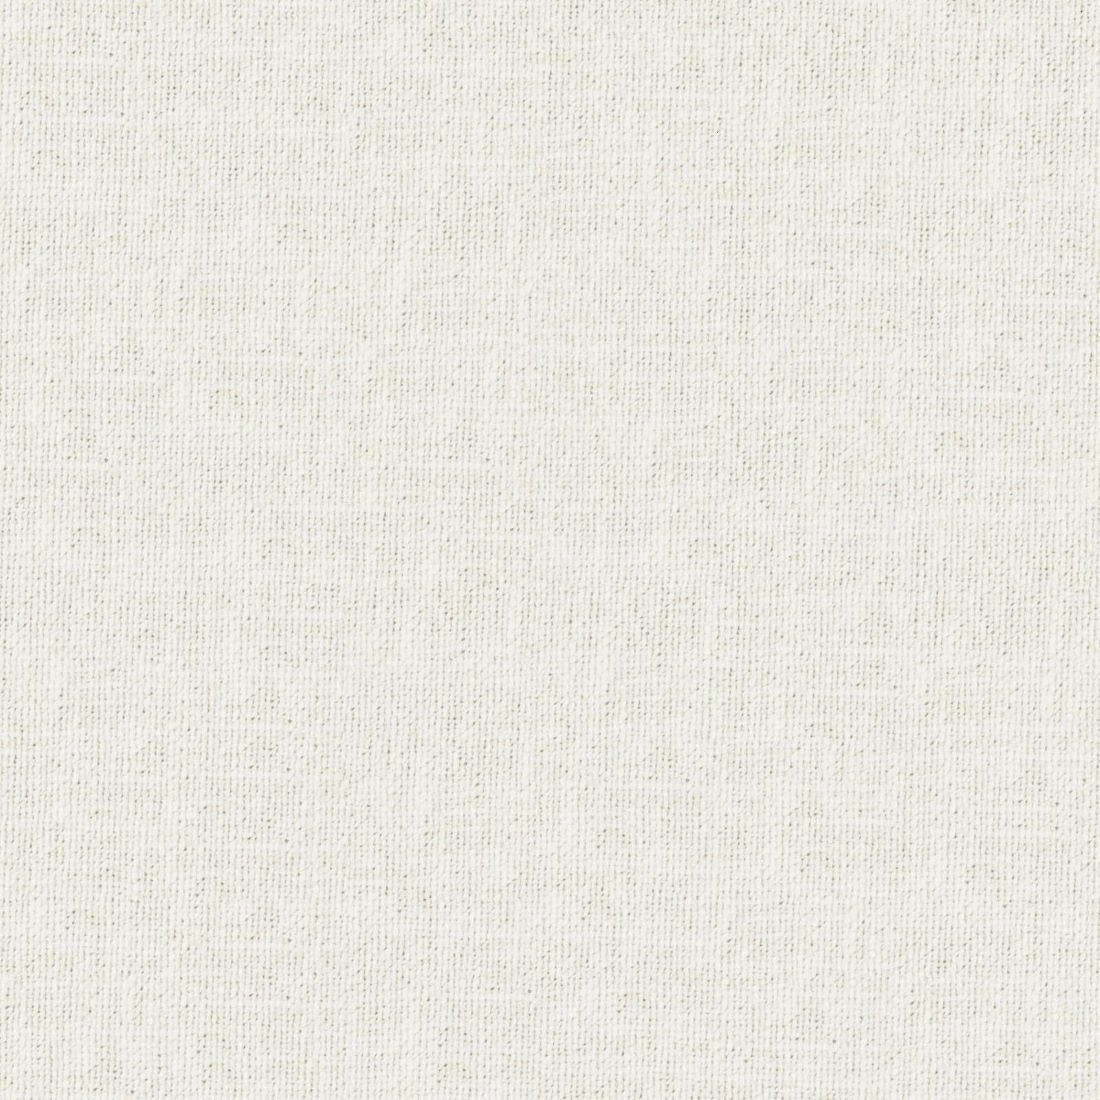 Casual Ivory Upholstery Fabric